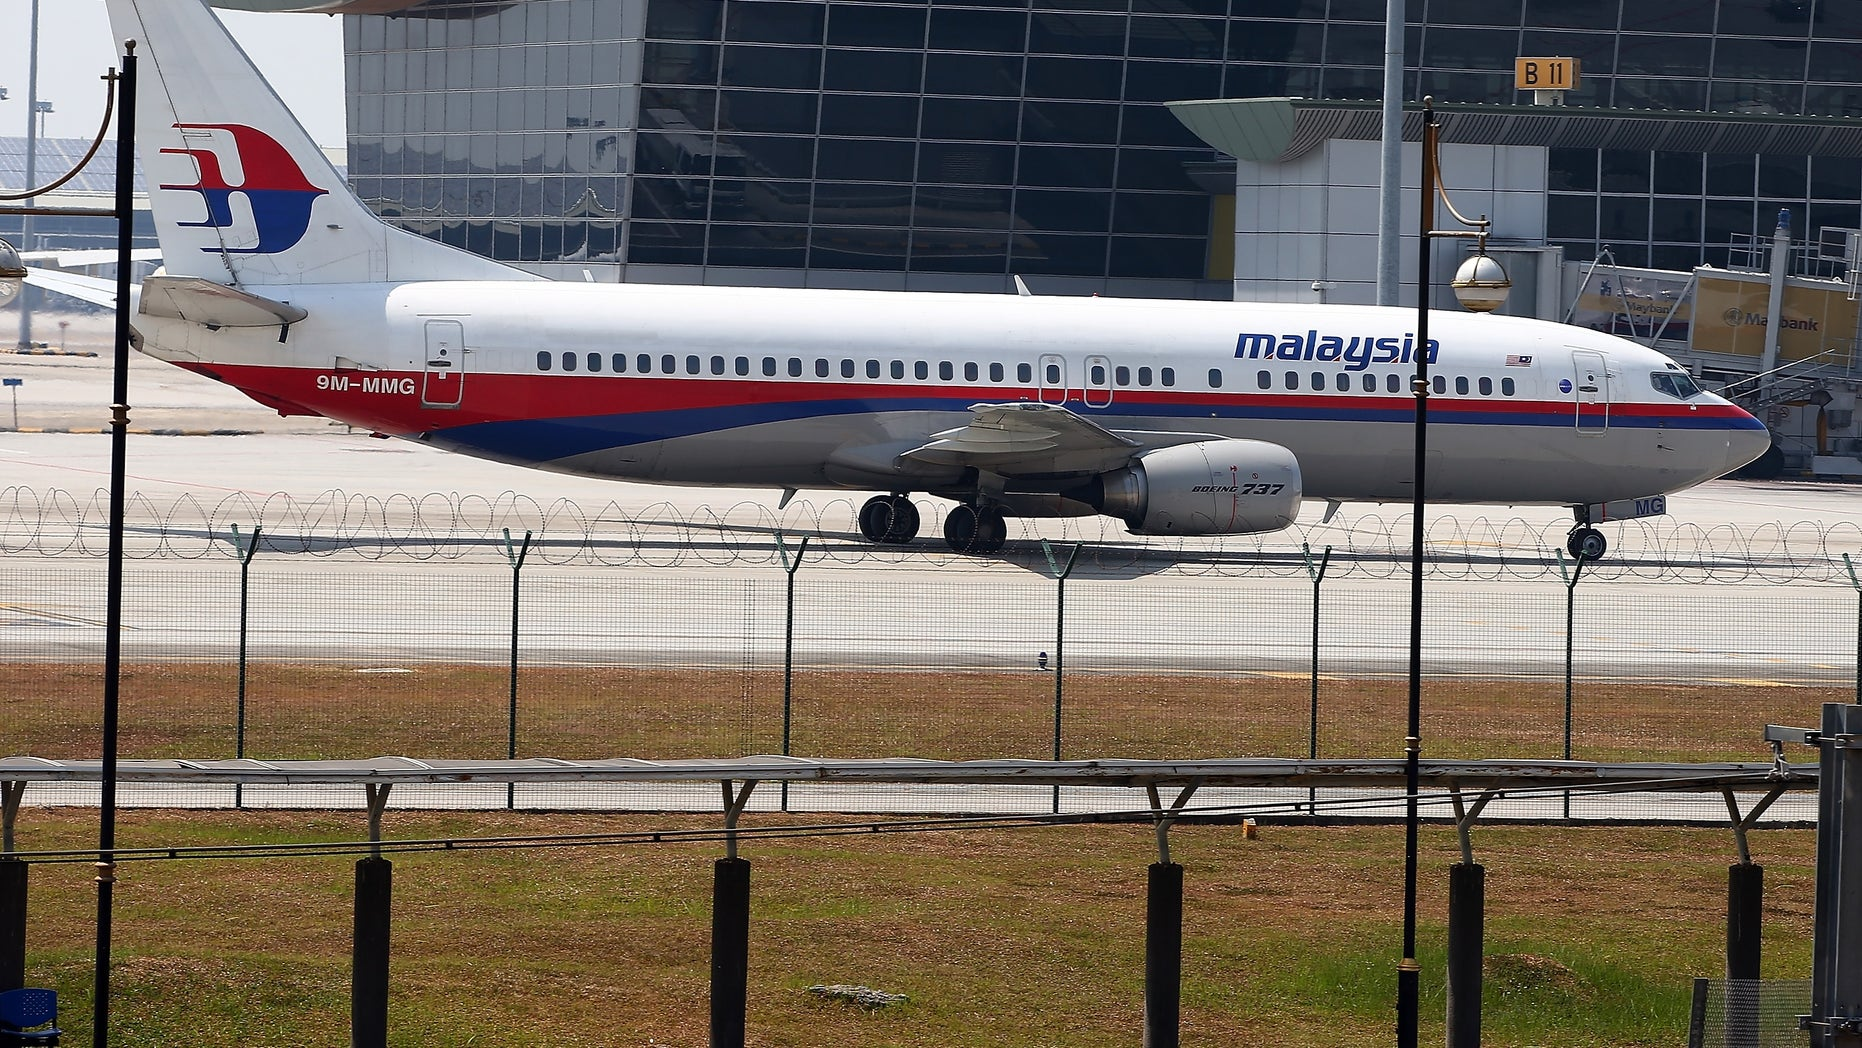 A Malaysia Airline jet parked on the tarmac at the Kuala Lumpur International Airport on March 8, 2014.